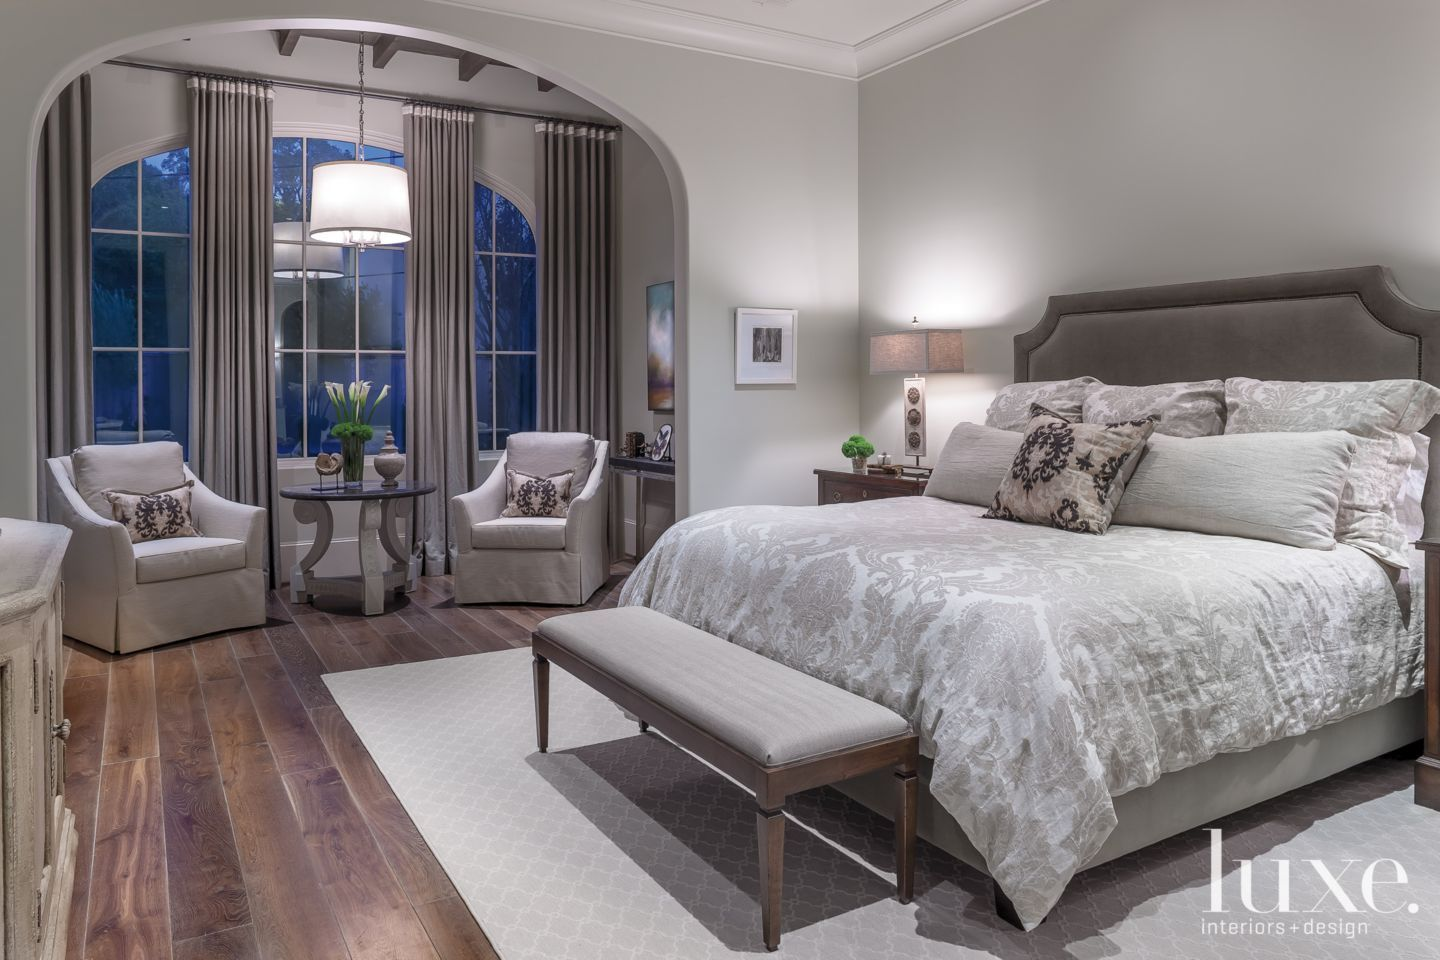 Luxe Interiors Design Official Site Architecture Home Tours Gray Master Bedroom Bedroom With Sitting Area Master Bedroom Sitting Area Most popular relaxingmaster bedroom